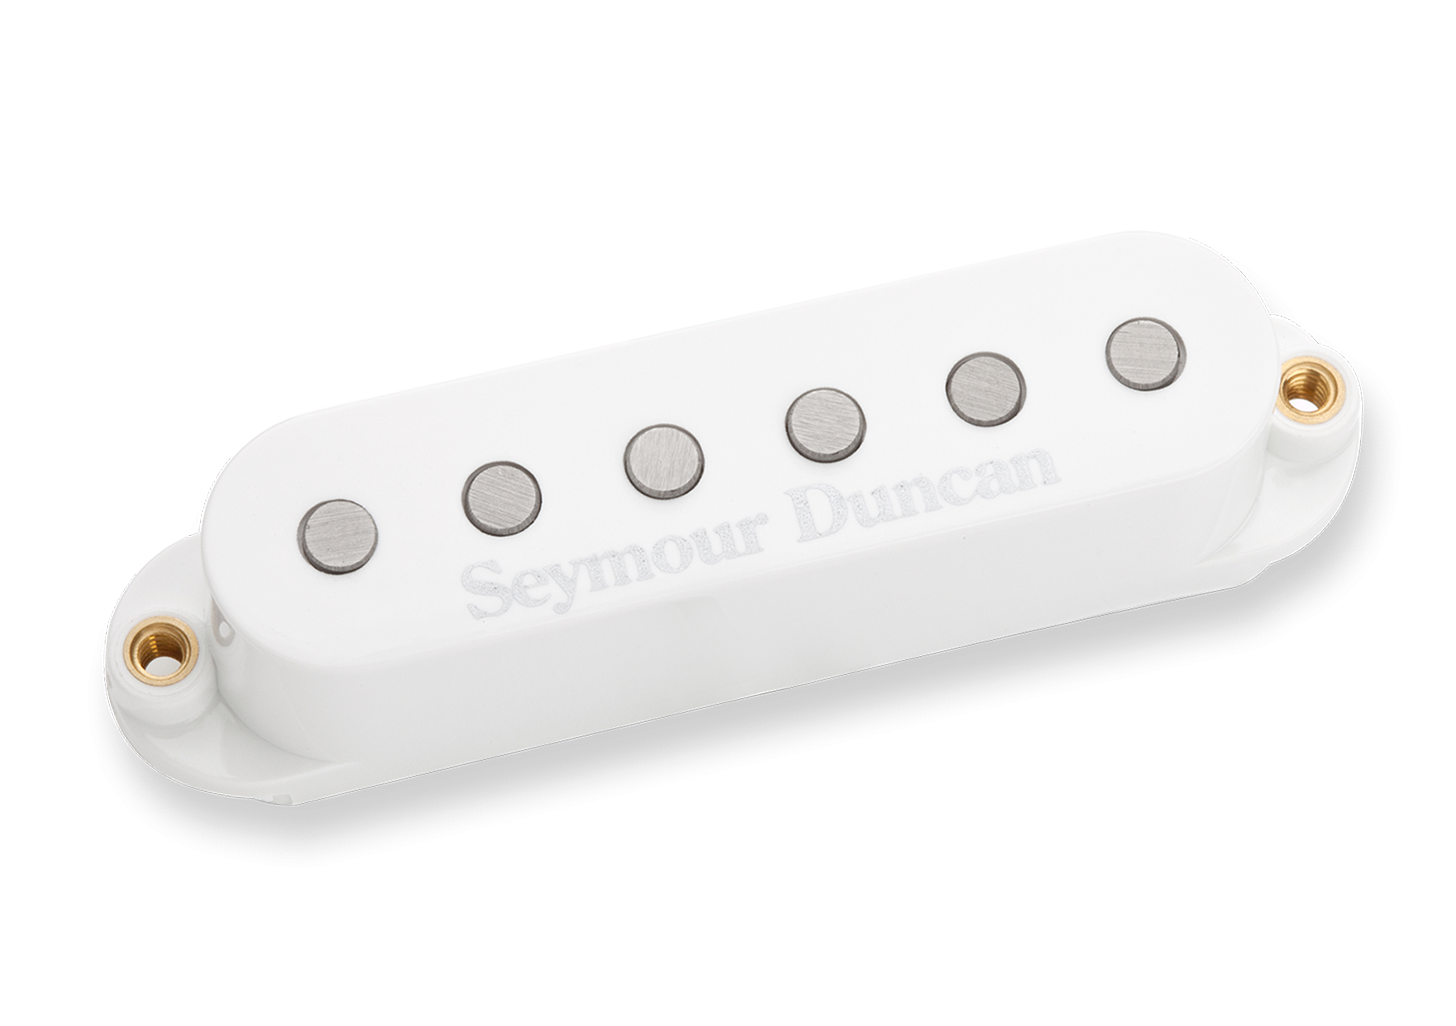 Seymour Duncan Vintage Hot Stack Plus Strat STK-S7 White